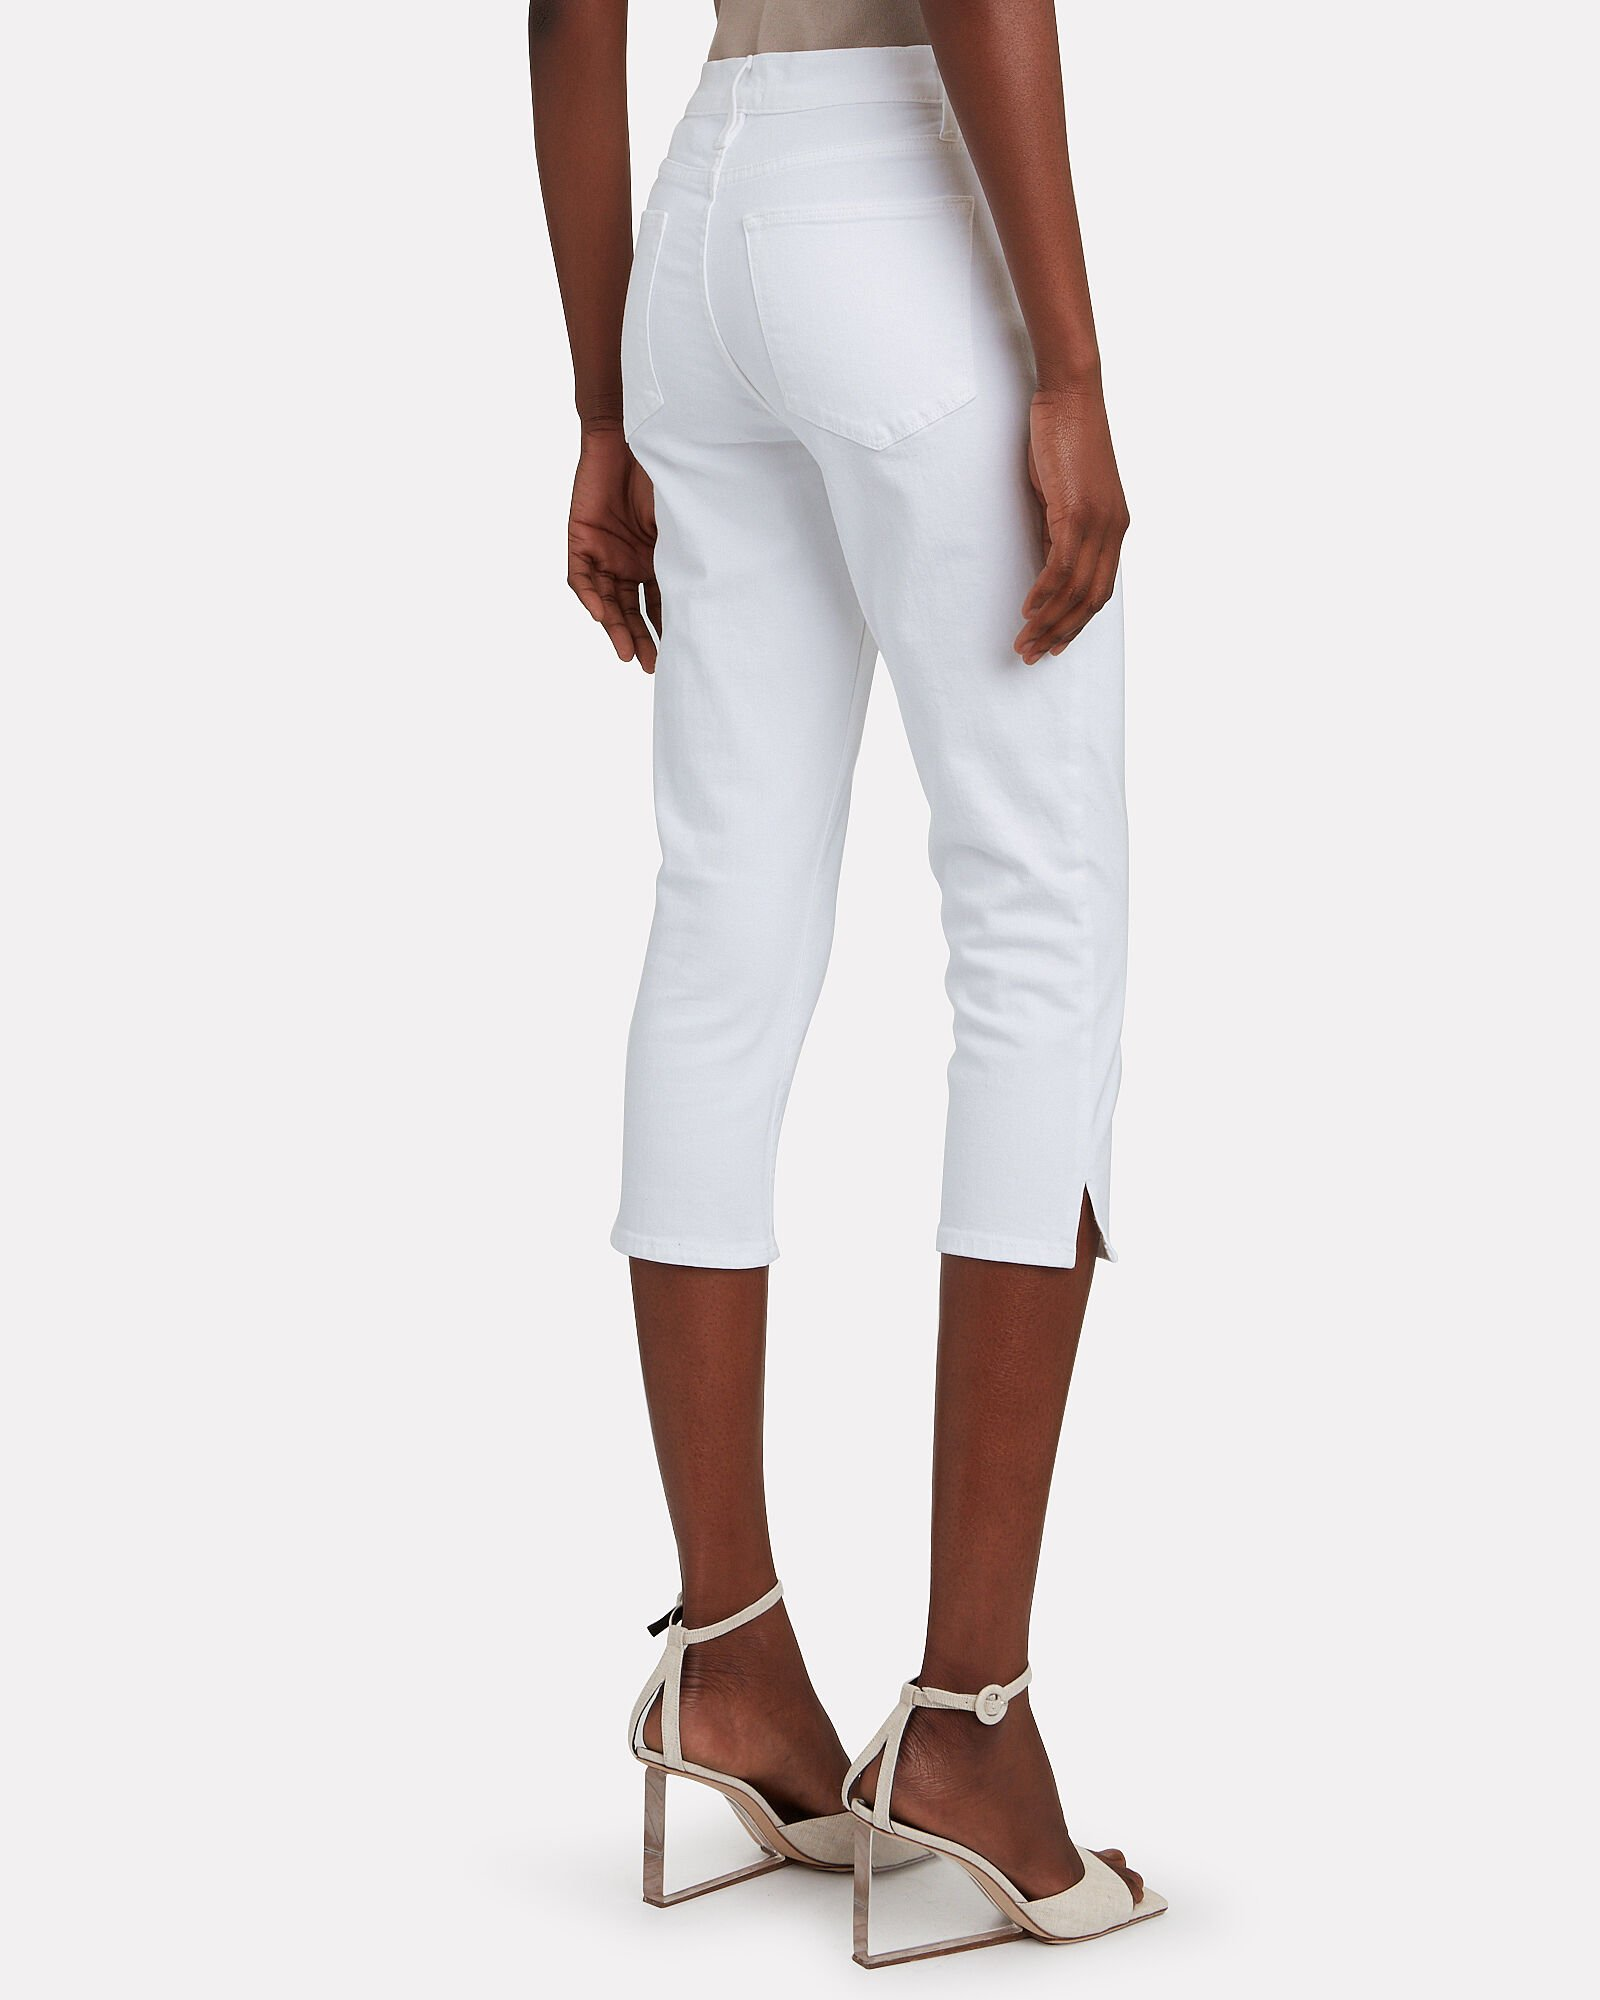 Le High Pedal Pusher Skinny Jeans, BLANC, hi-res